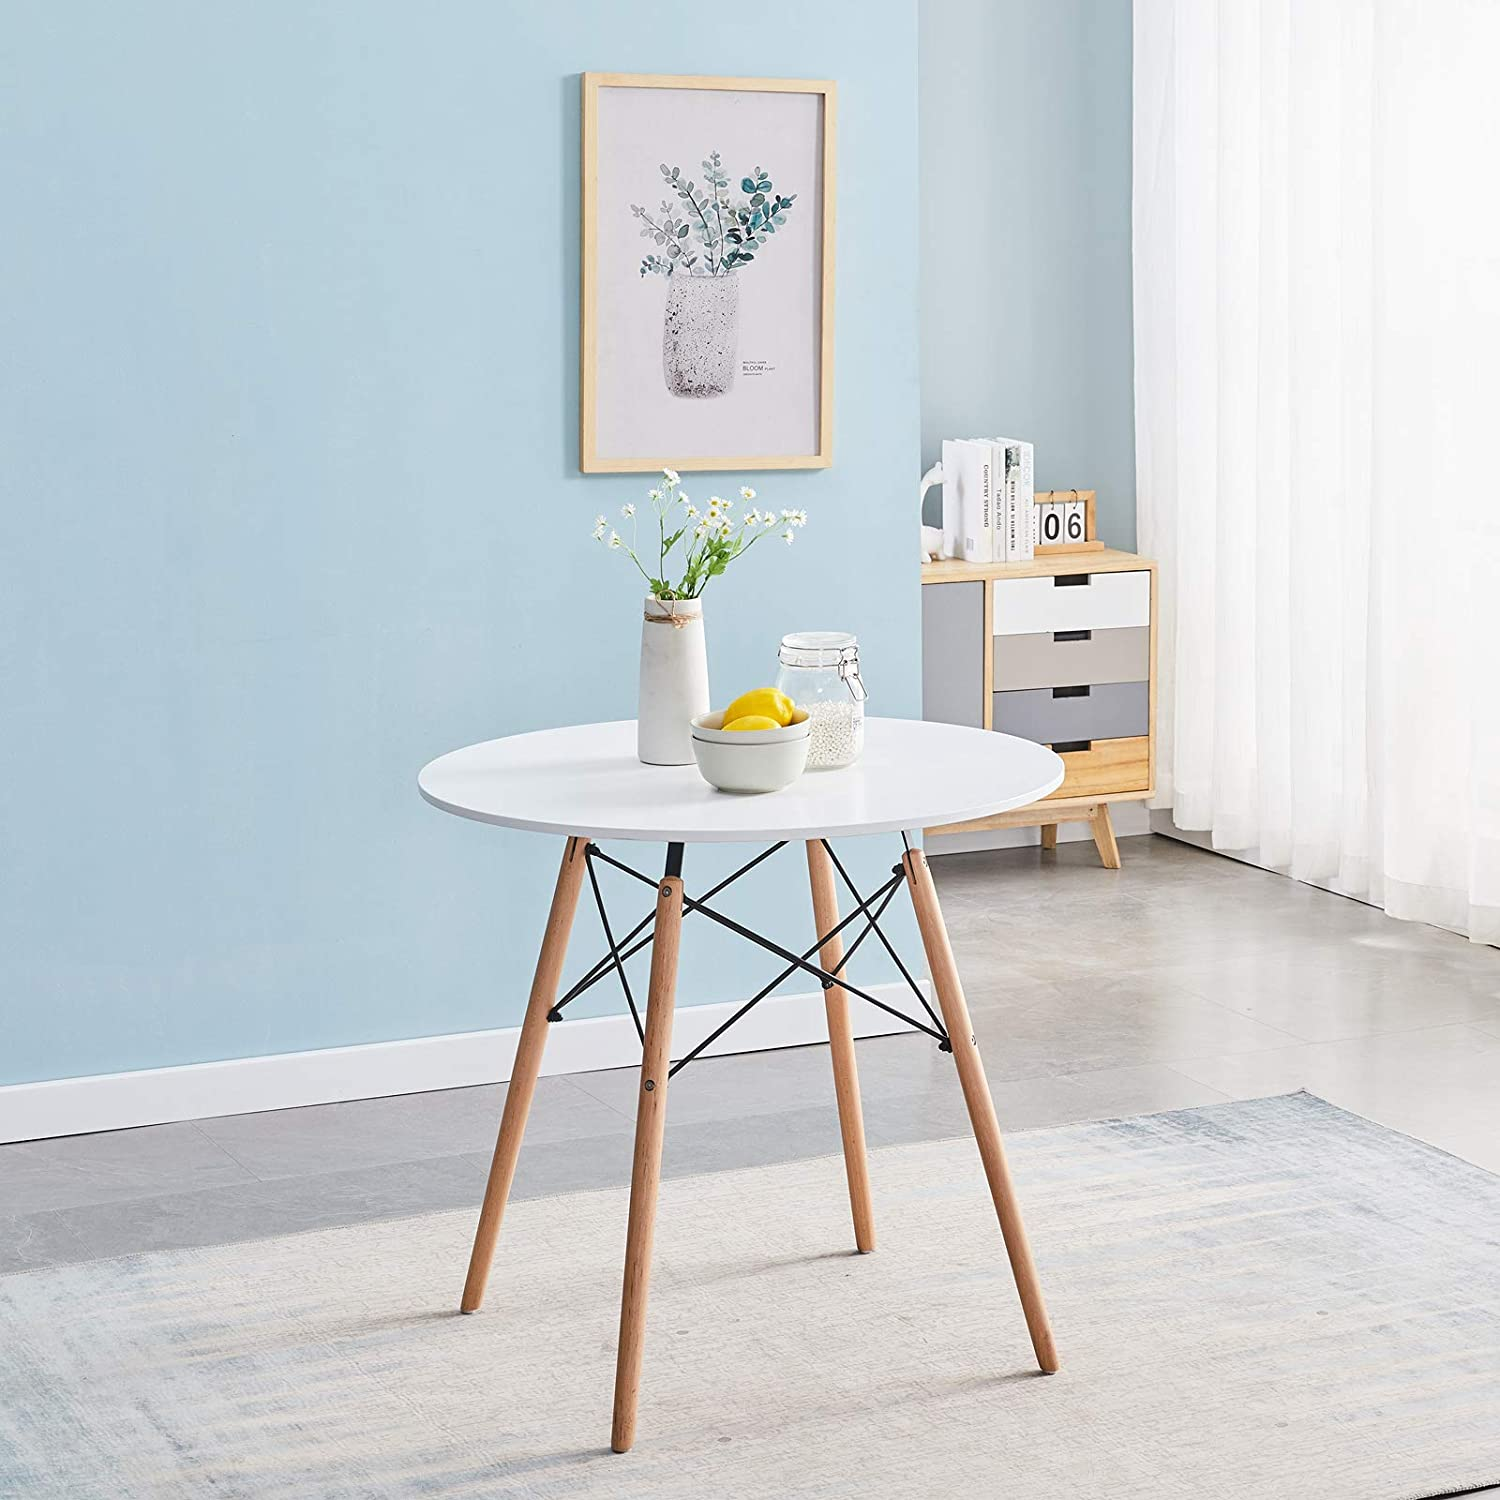 Coffee Table for Kitchen Dining Room,Living Room,White Symylife Modern Round Dining Table with Wood Legs